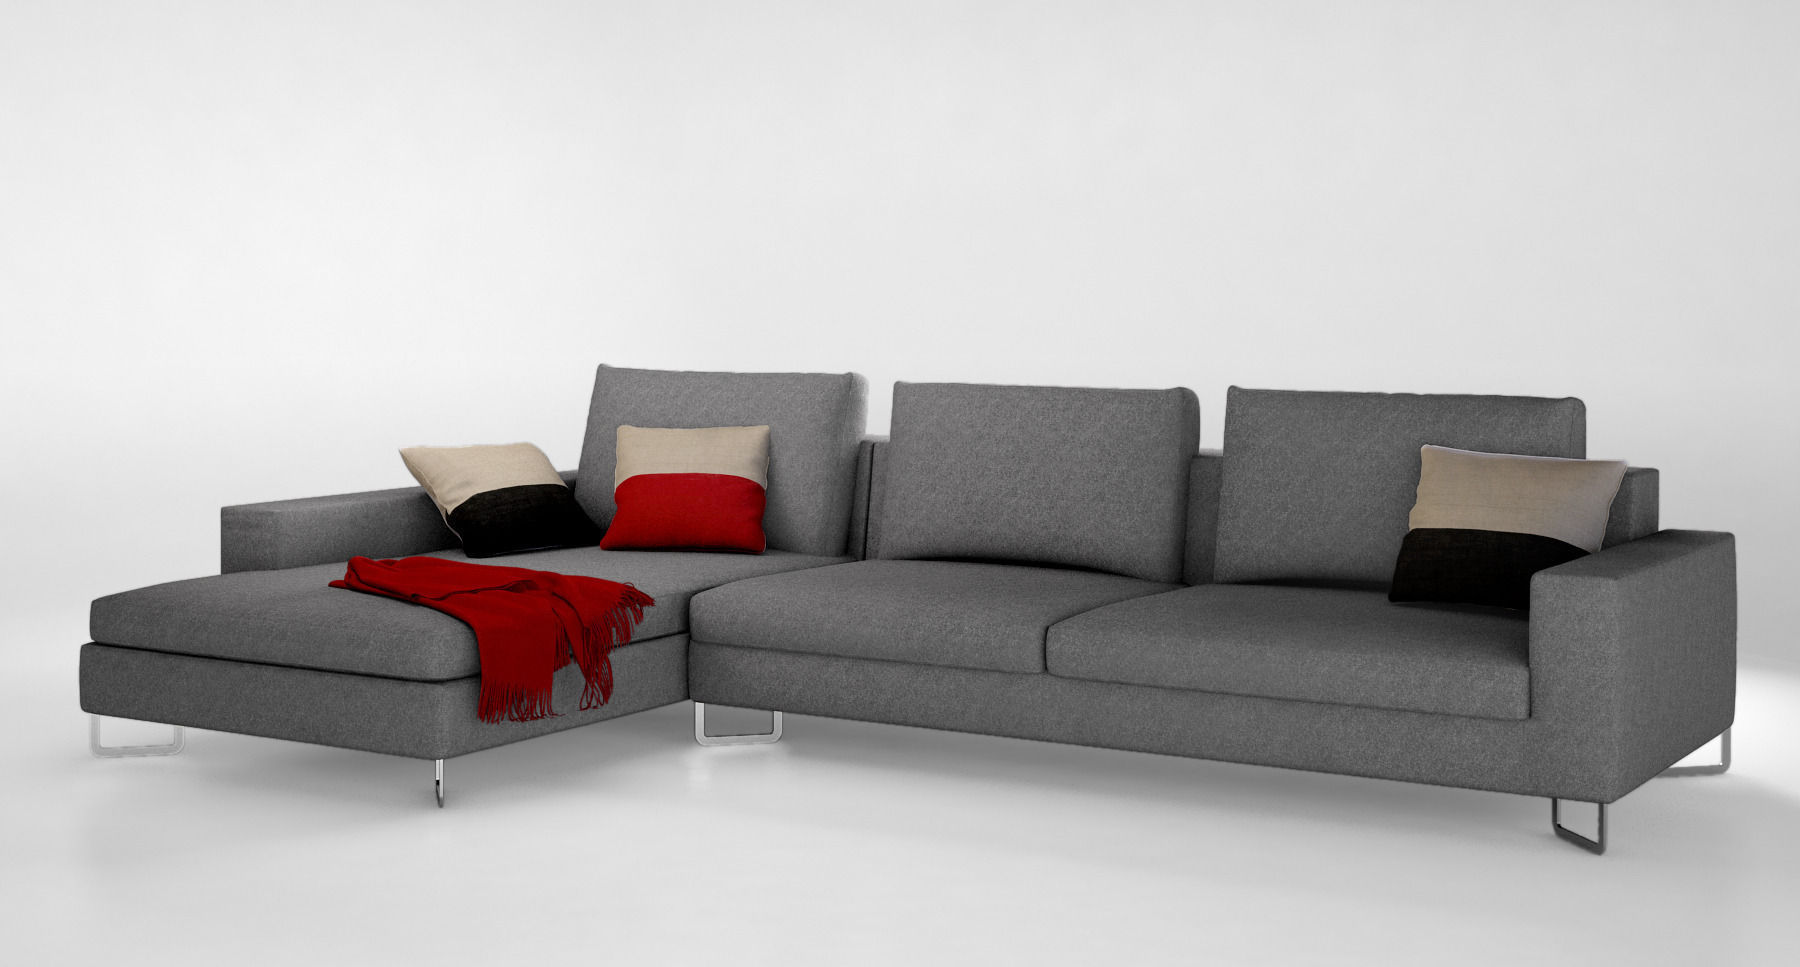 Big Sofa Vincent Molteni Sofa Paul Sofa With Chaise Longue By Molteni C